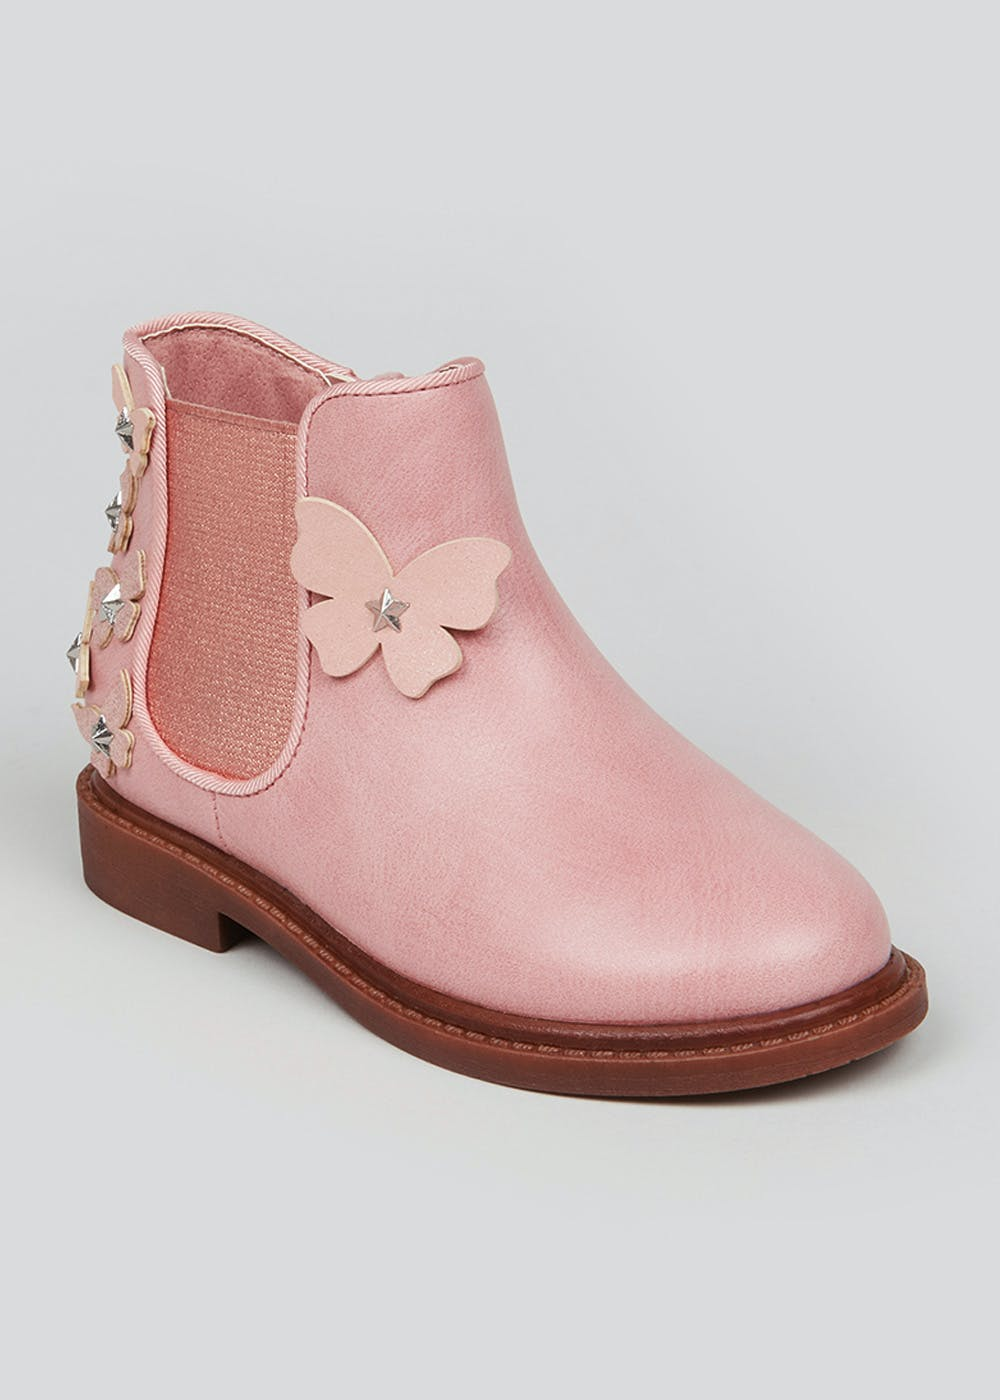 SIZE 11,12,13,1,2,3,4,5 NEW ARRIVALS GIRLS PINK SEQUIN DUCK BOOTS